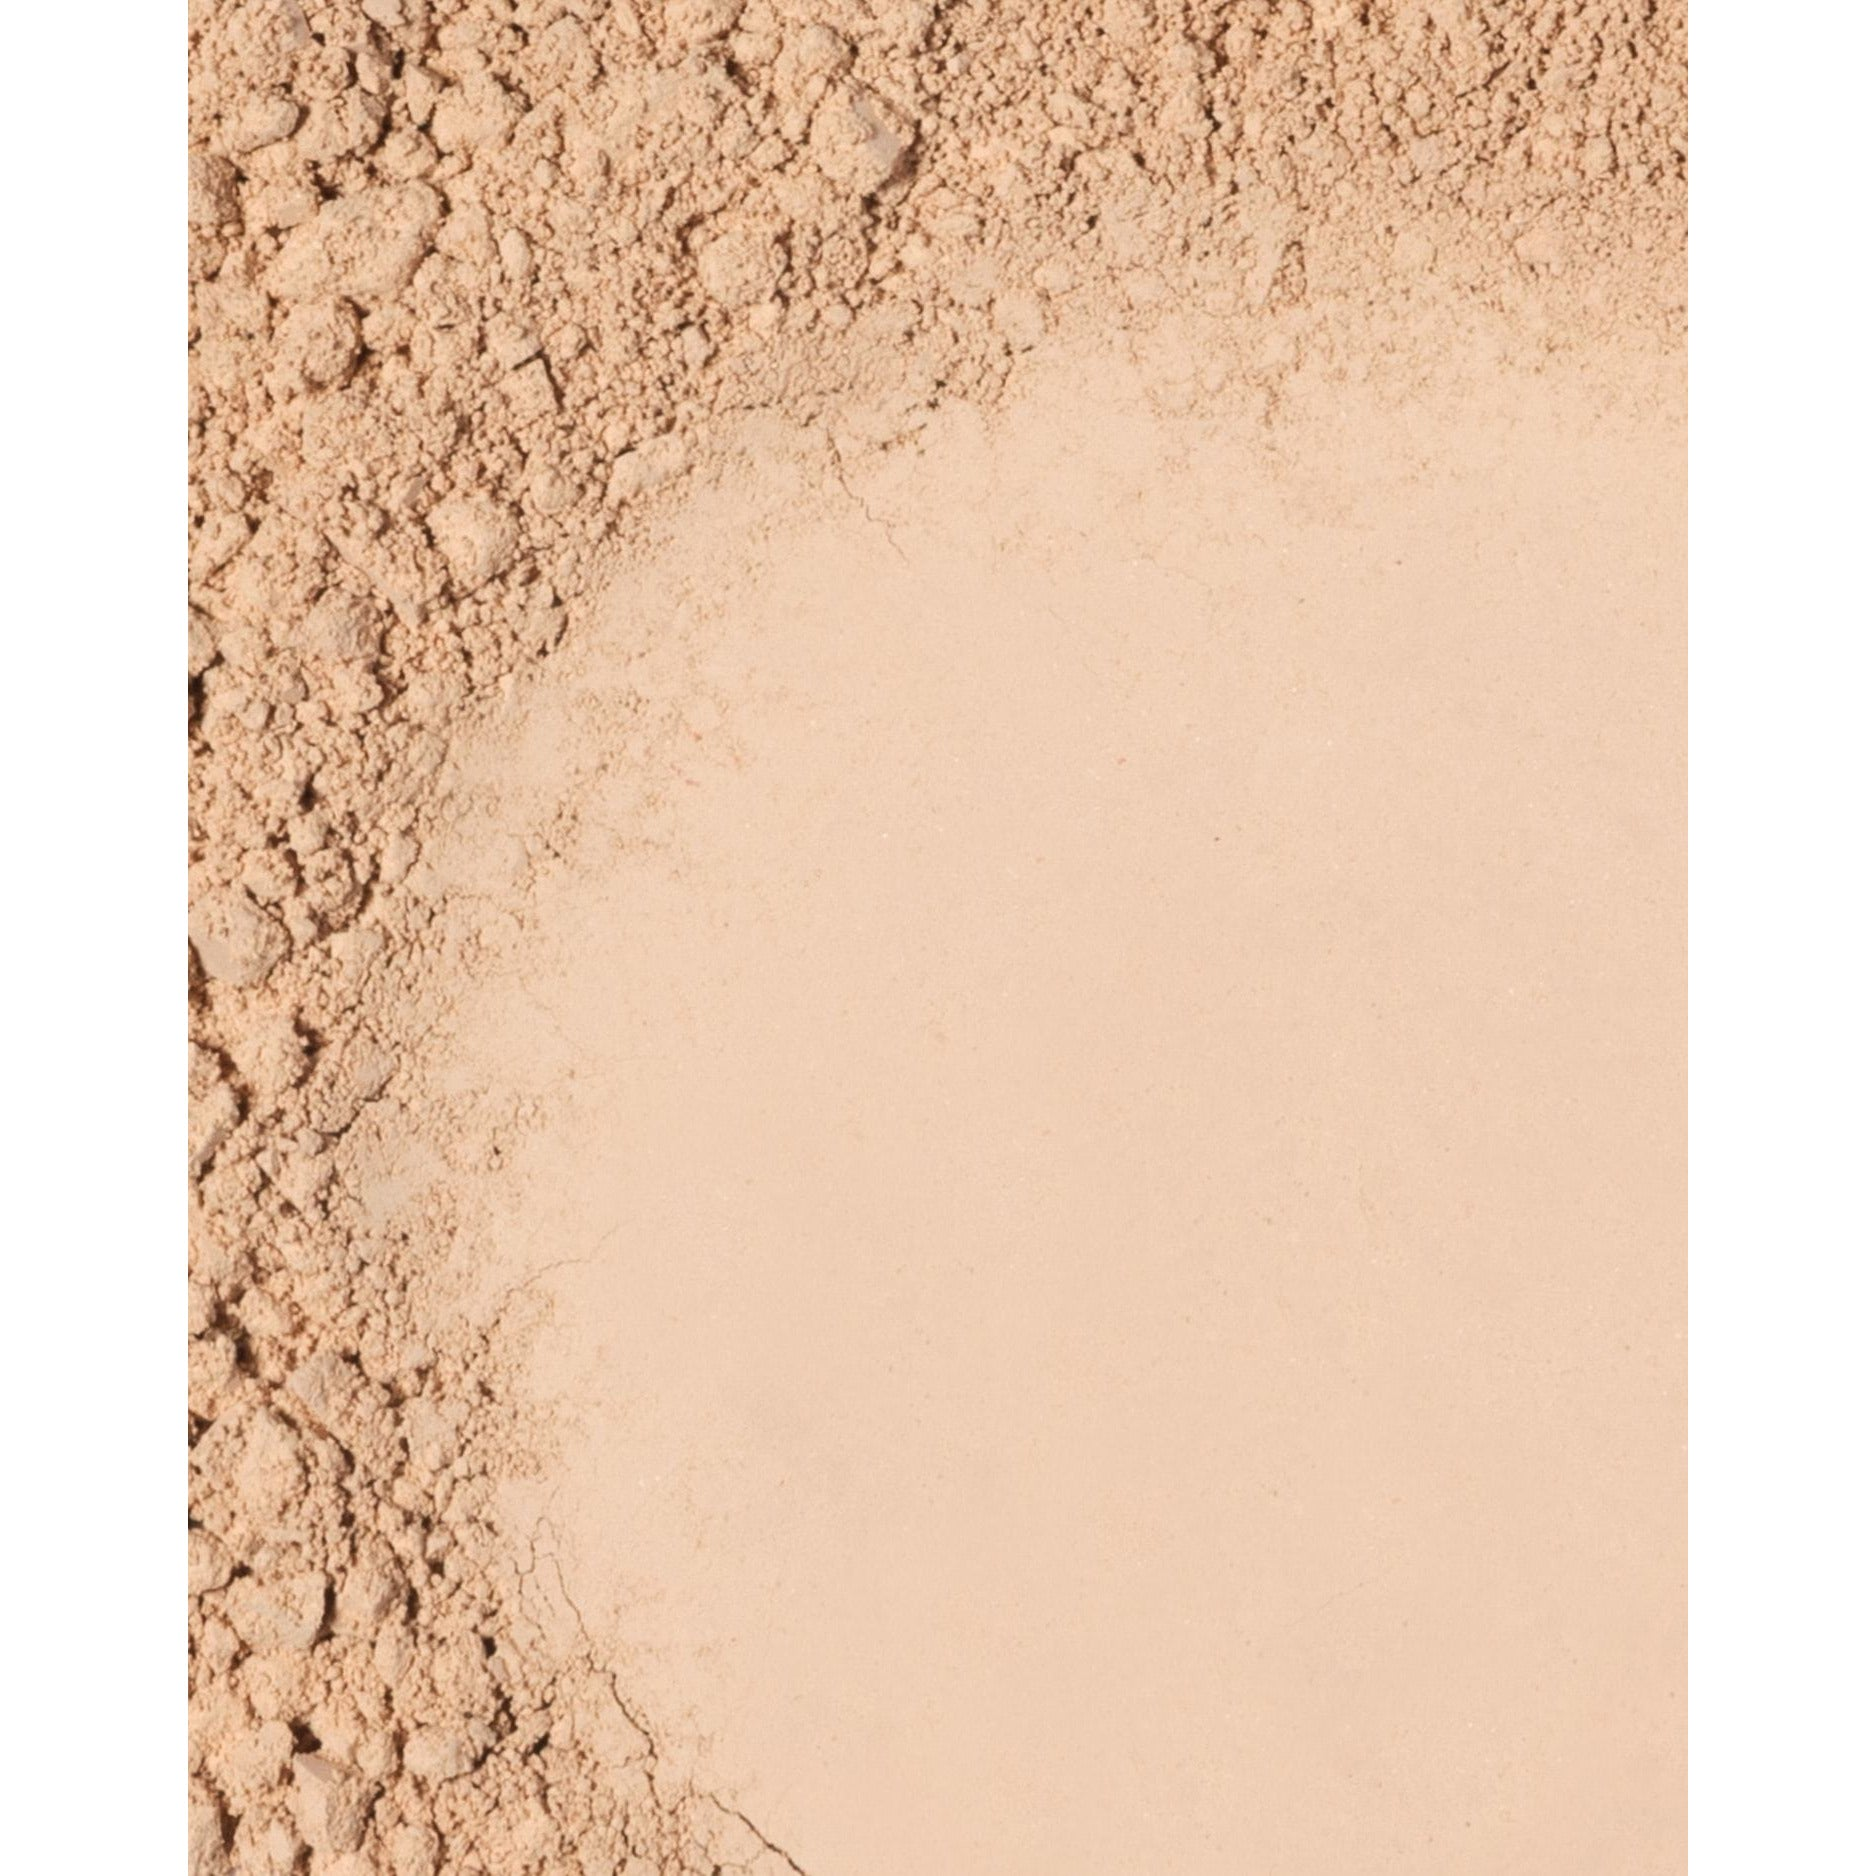 Loyal - Omiana Loose Powder Mineral Foundation No Titanium Dioxide and No Mica